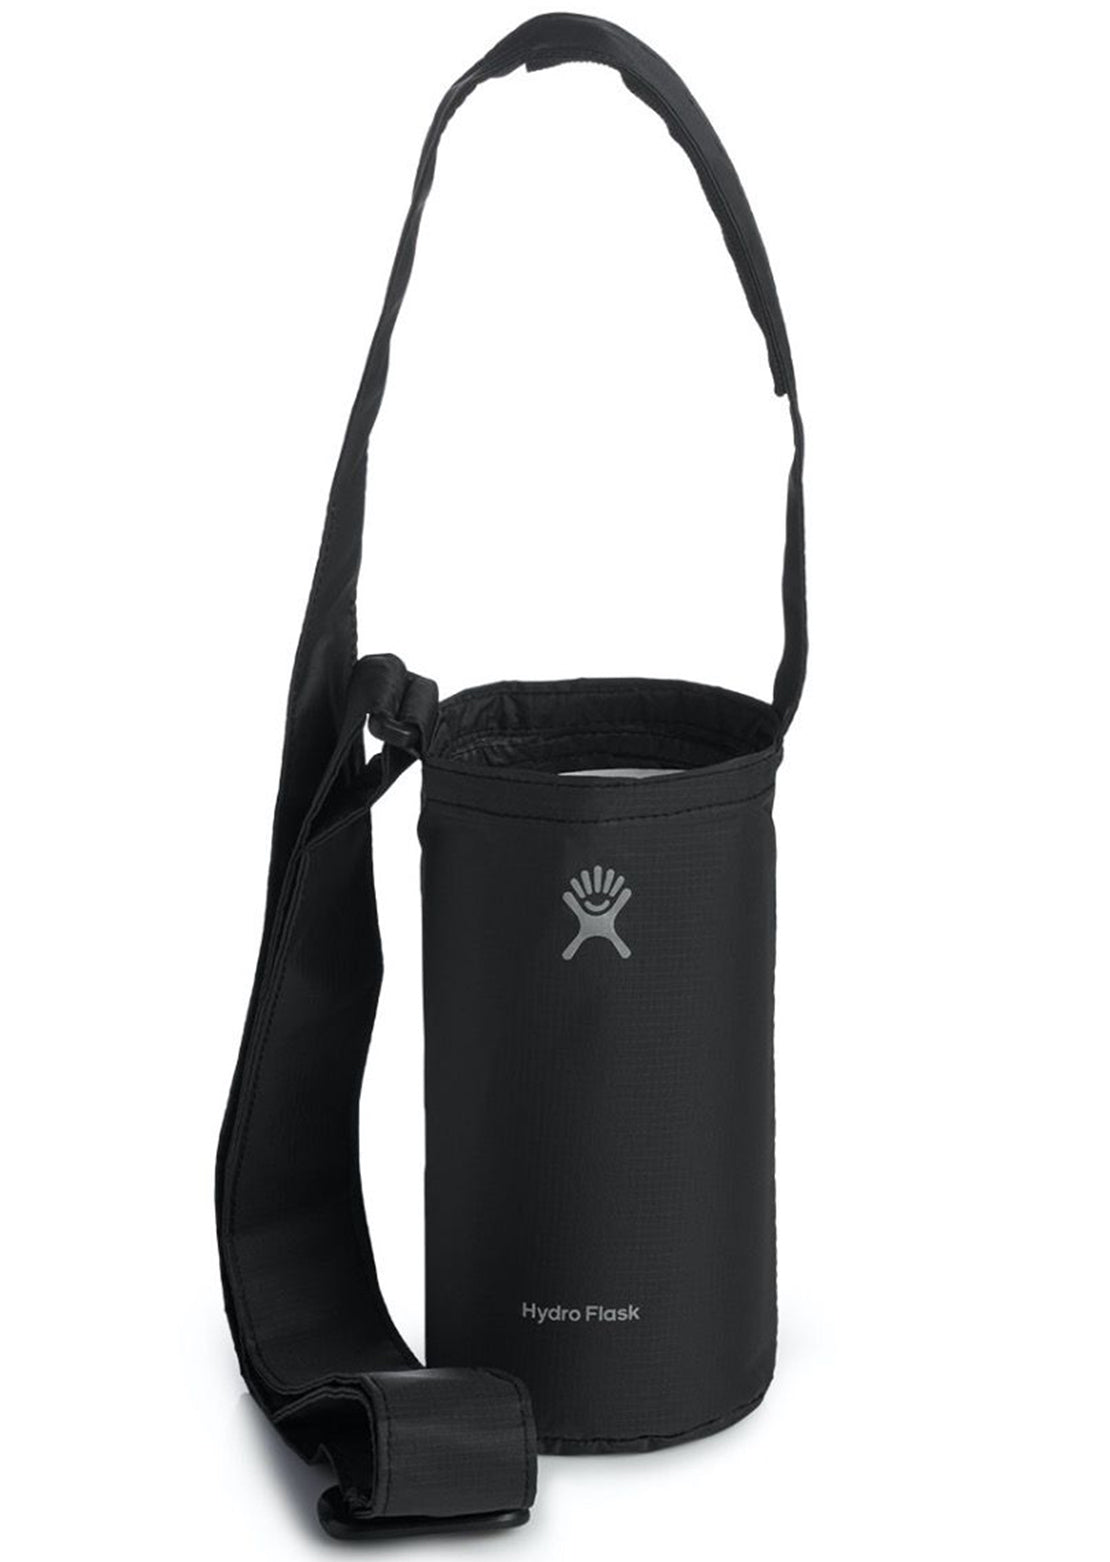 Hydro Flask Medium Packable Bottle Sling Black